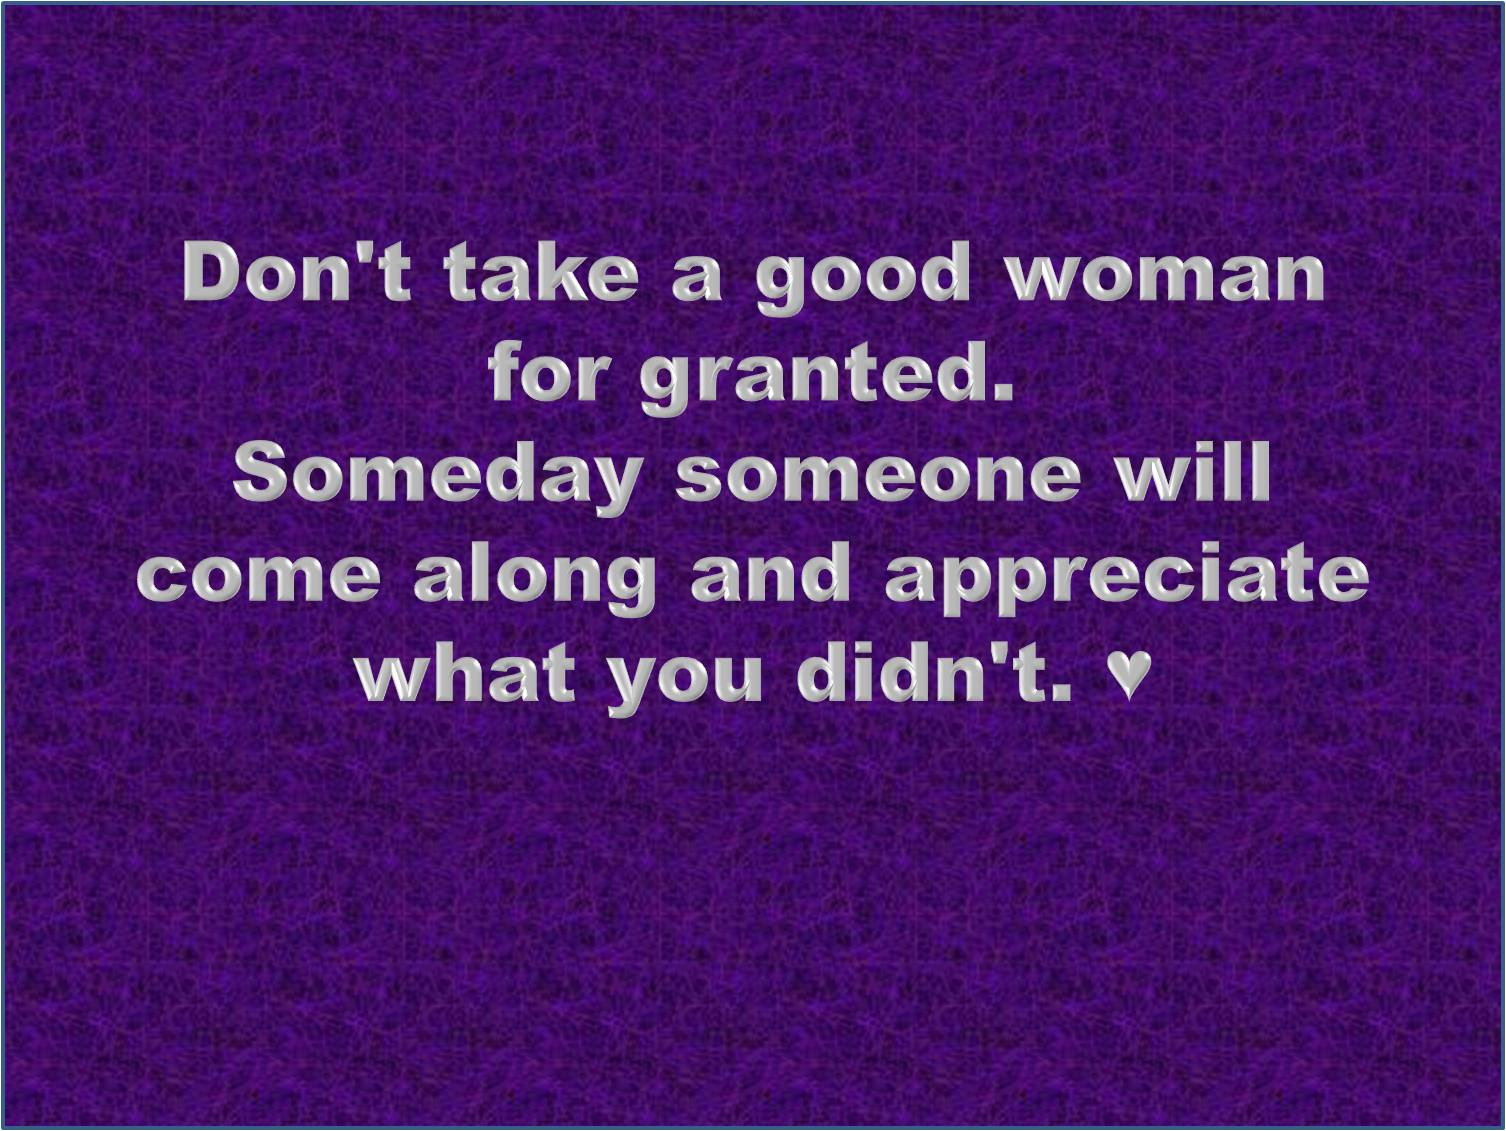 Good Woman Quotes My Coolest Quotes Coolest Quotes  Don't Take A Good Woman For